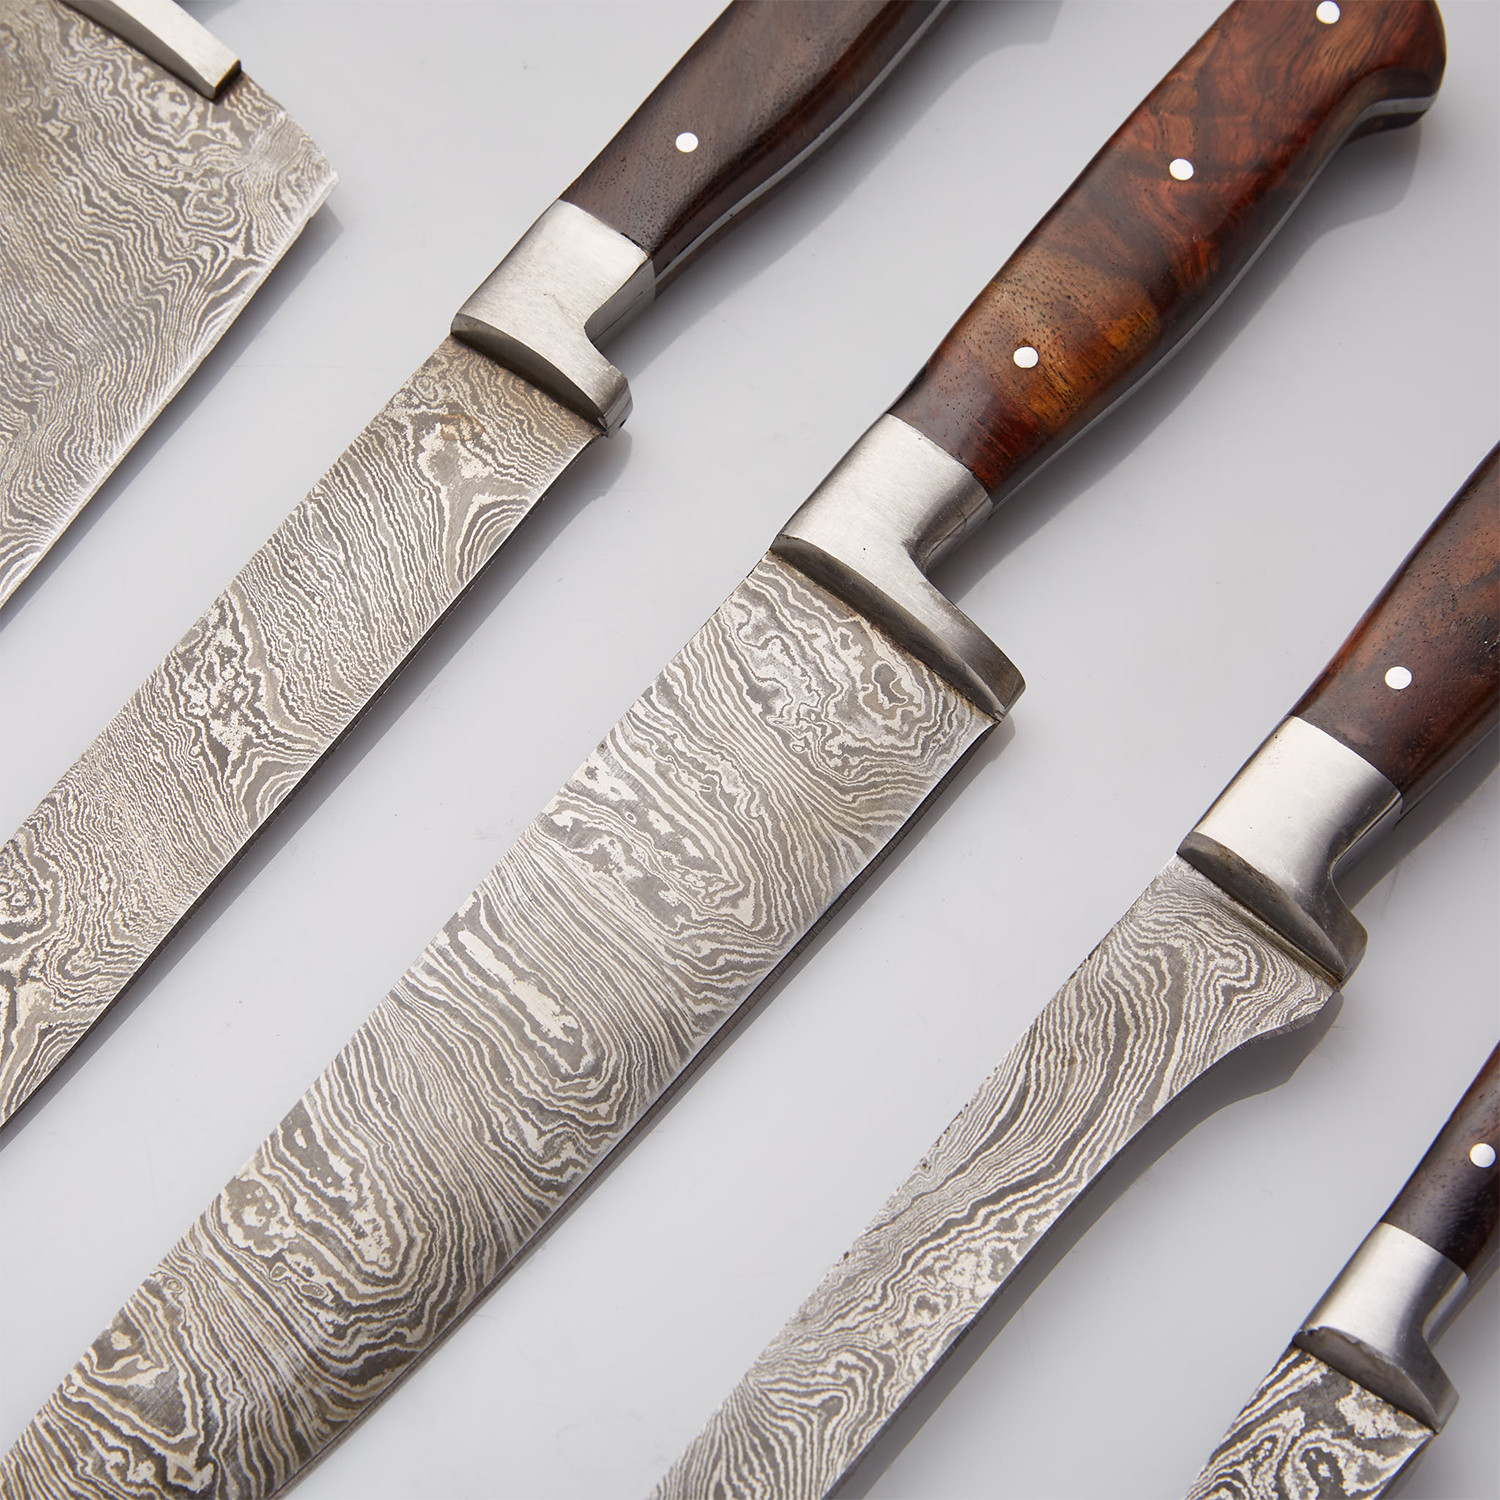 Rosewood Stainless Steel Chef S Knives Set Of 5